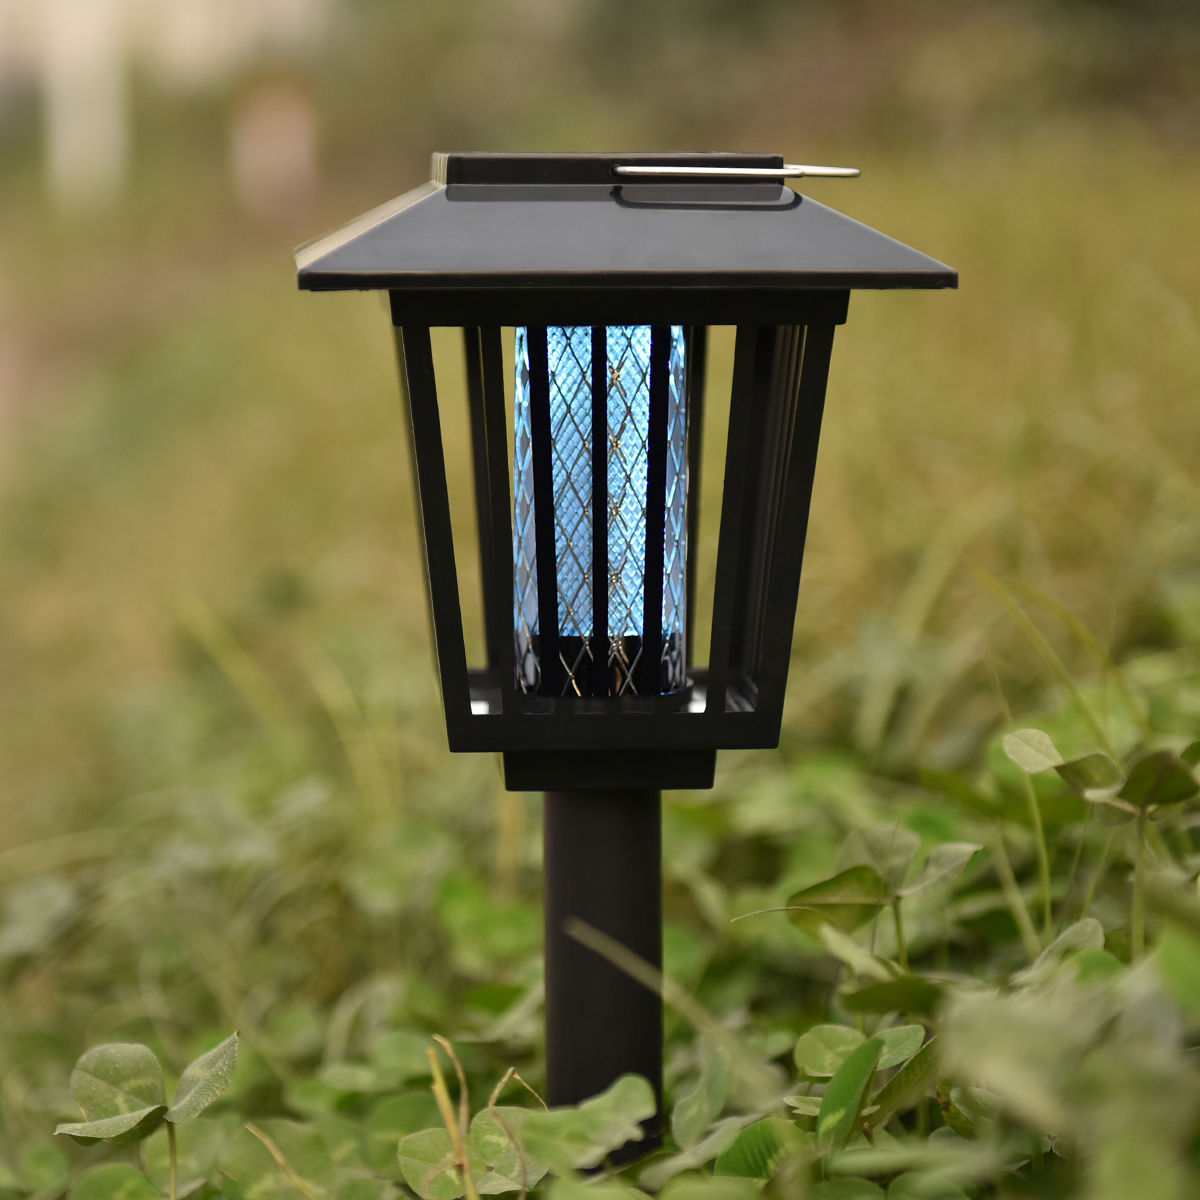 Costway Mosquito Insect Zapper Accent Kill bugs killer with Solar LED Garden Light Lamp by Costway